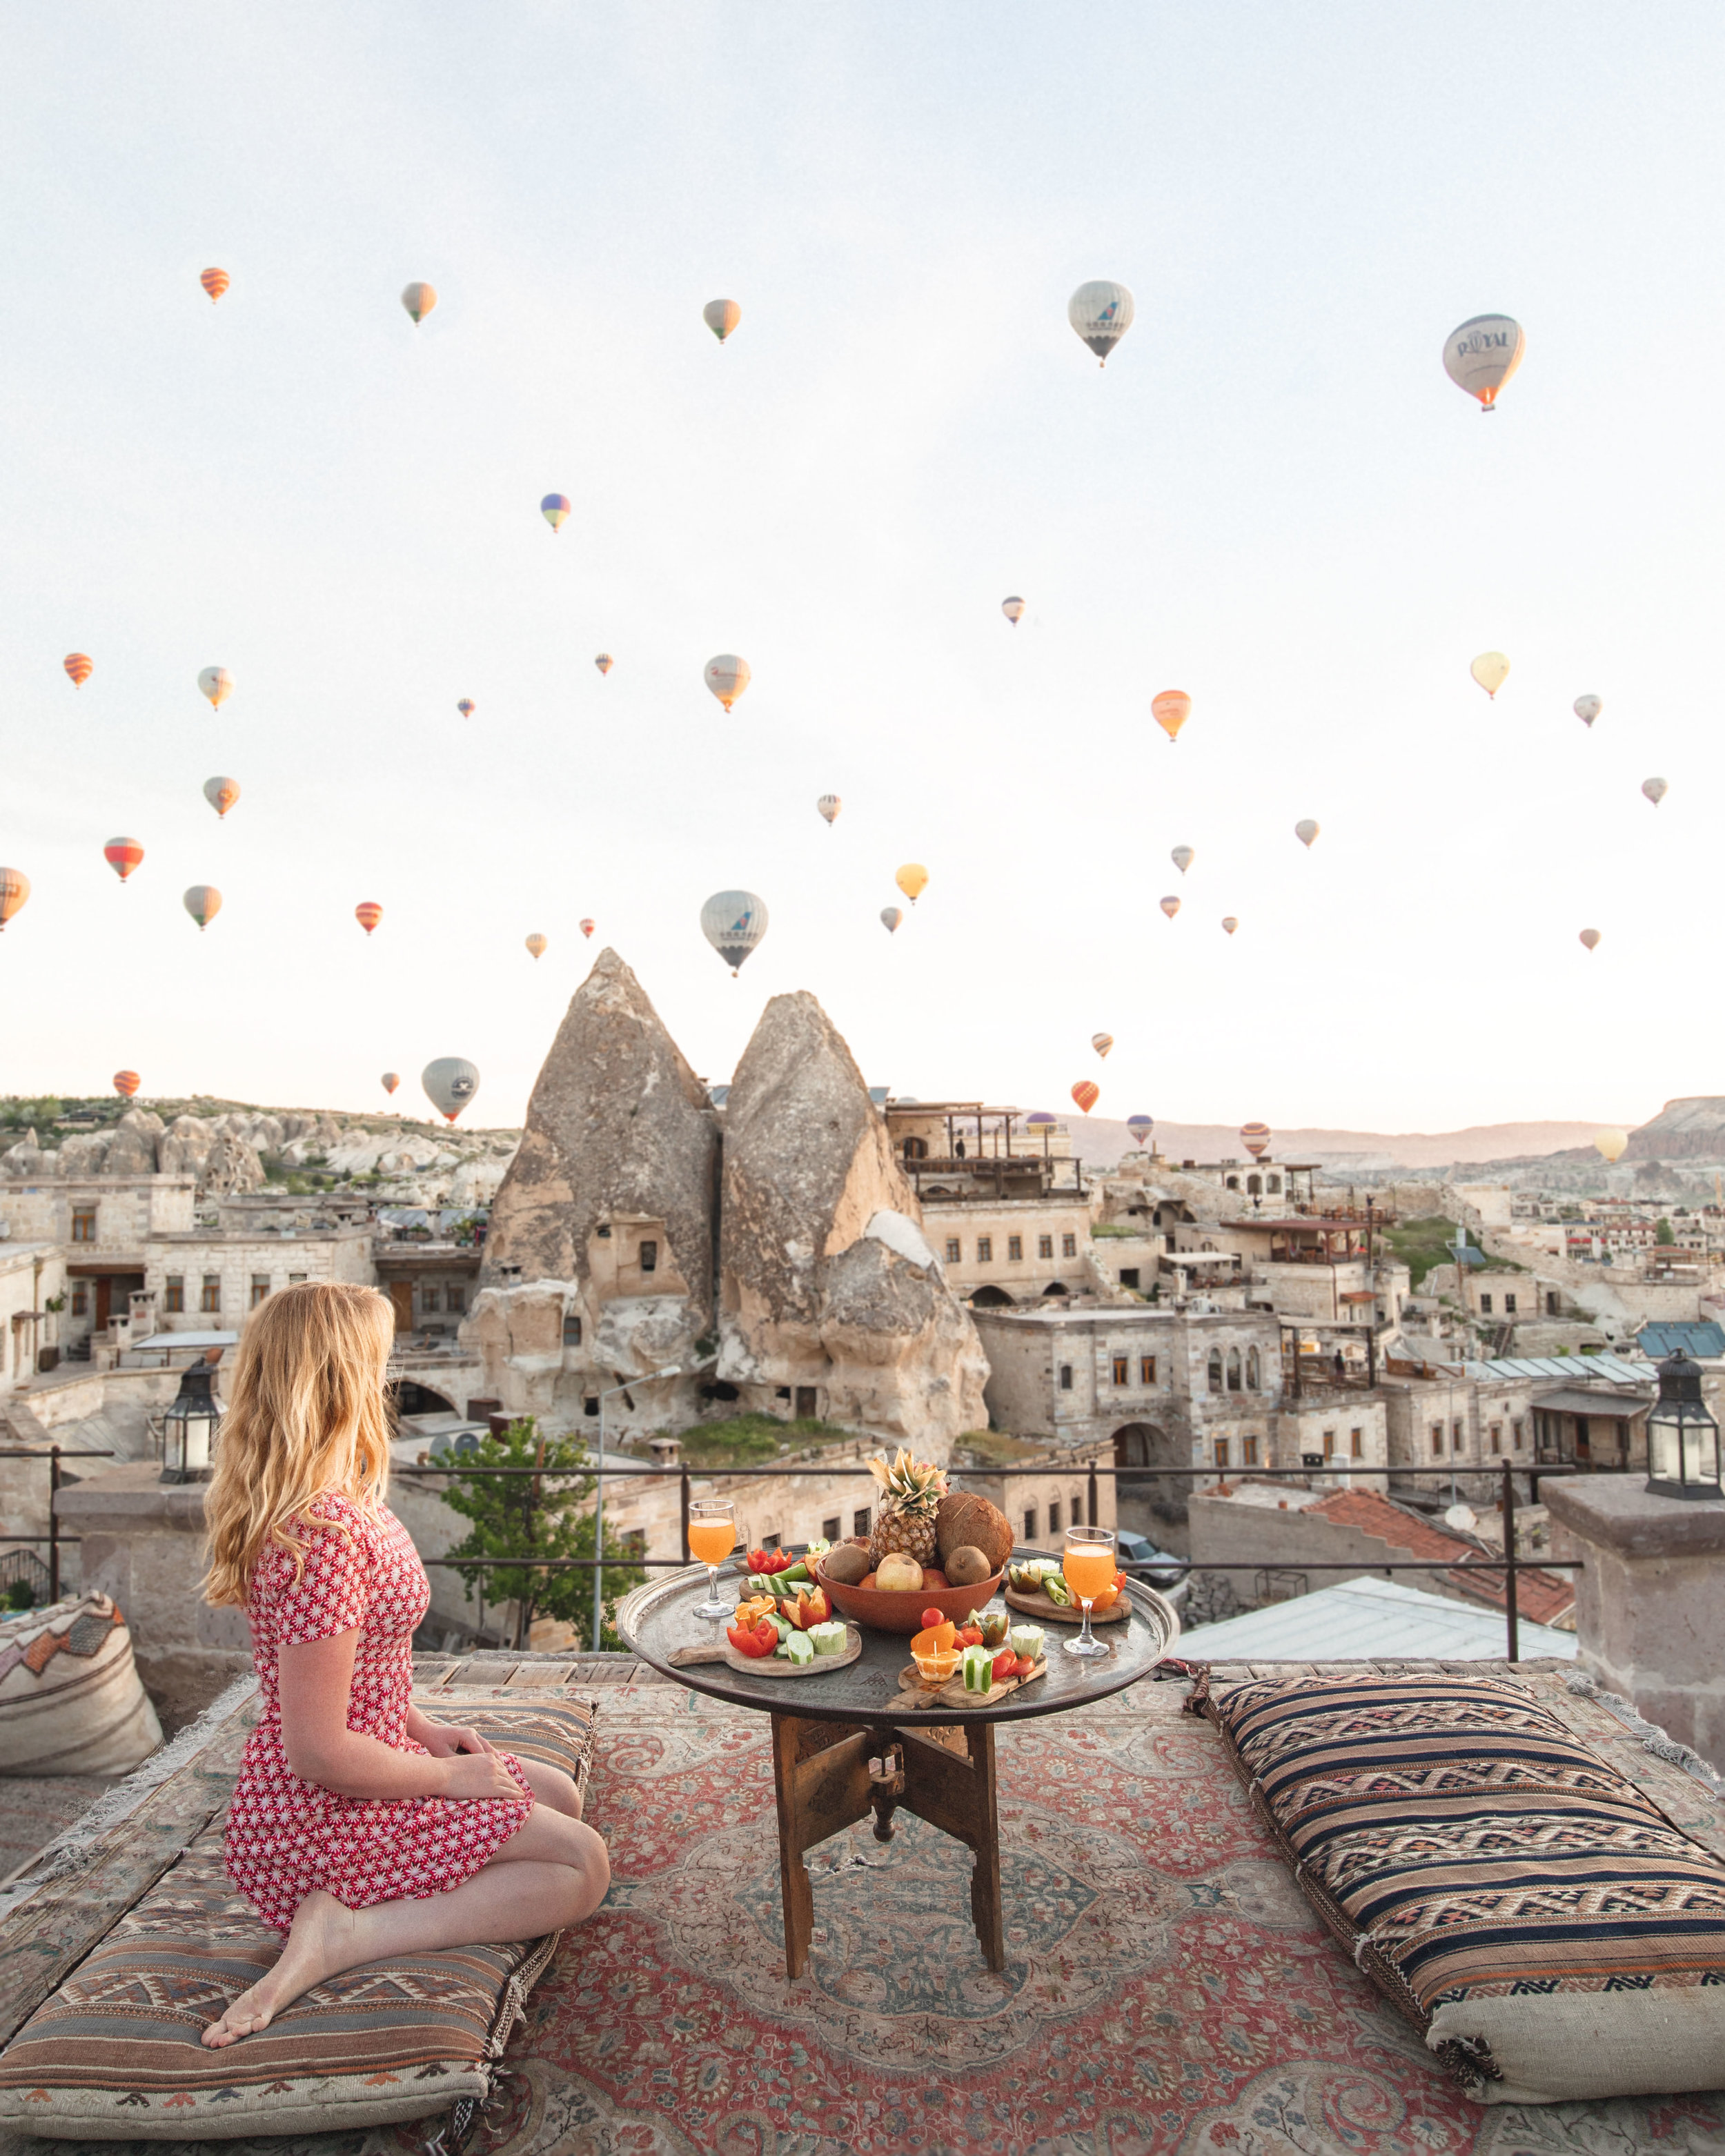 best things to do in Cappadoccia - Balloons from the balcony